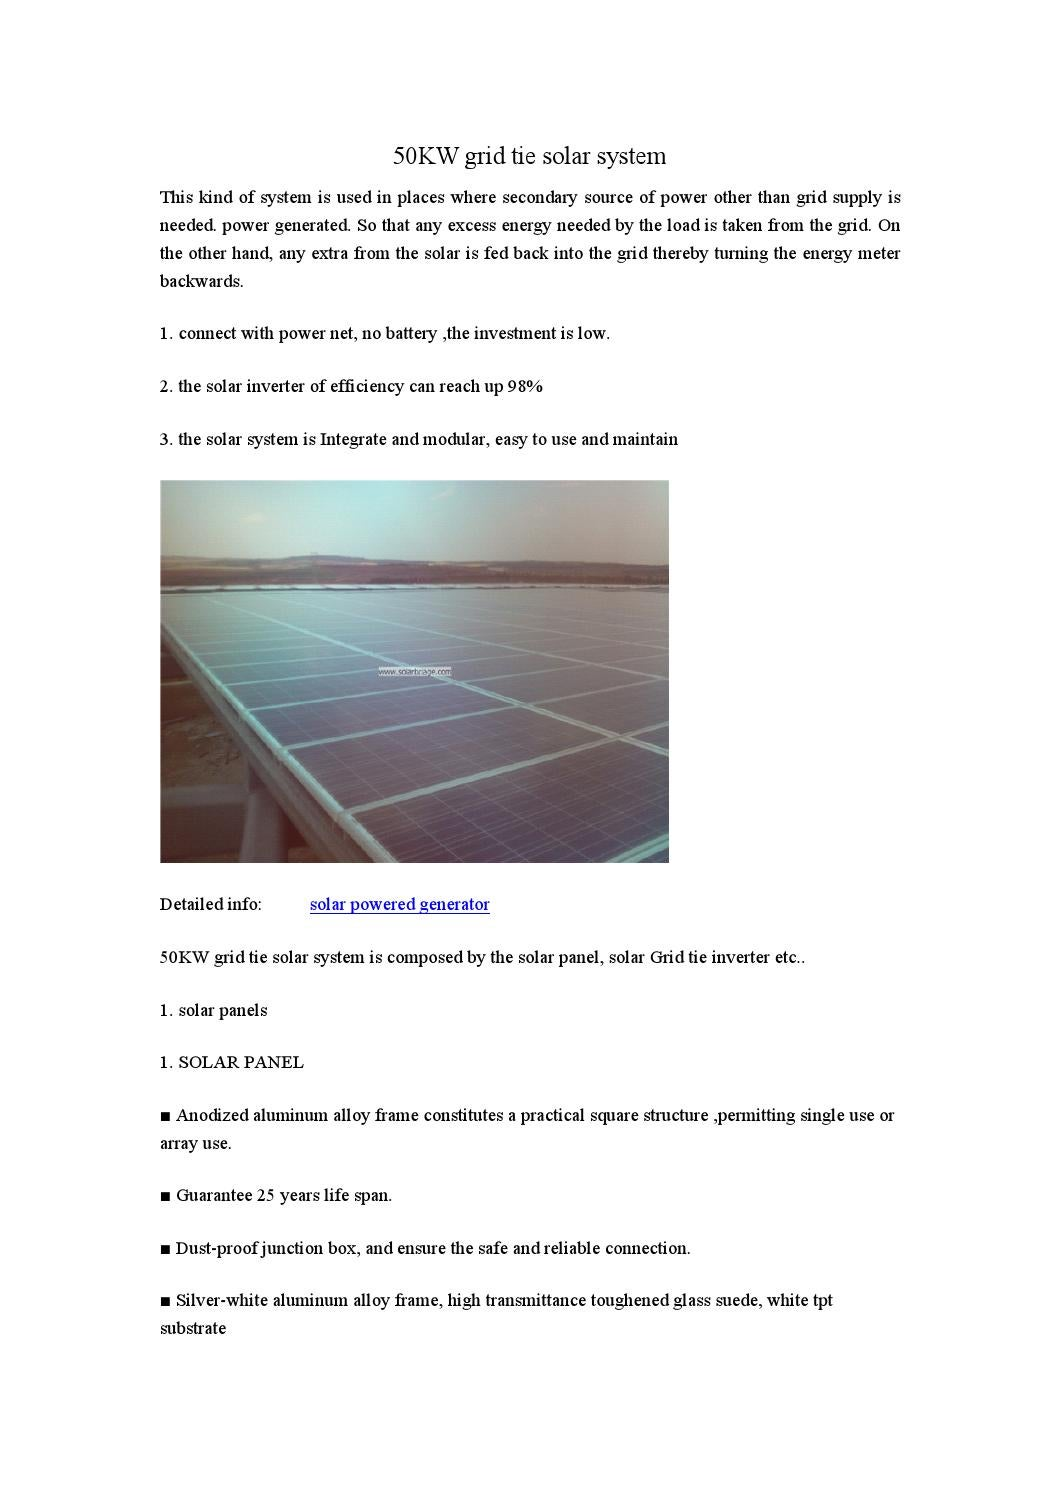 50kw Grid Tie Solar System By Wang Yongwen Issuu Wiring Panels To Inverter